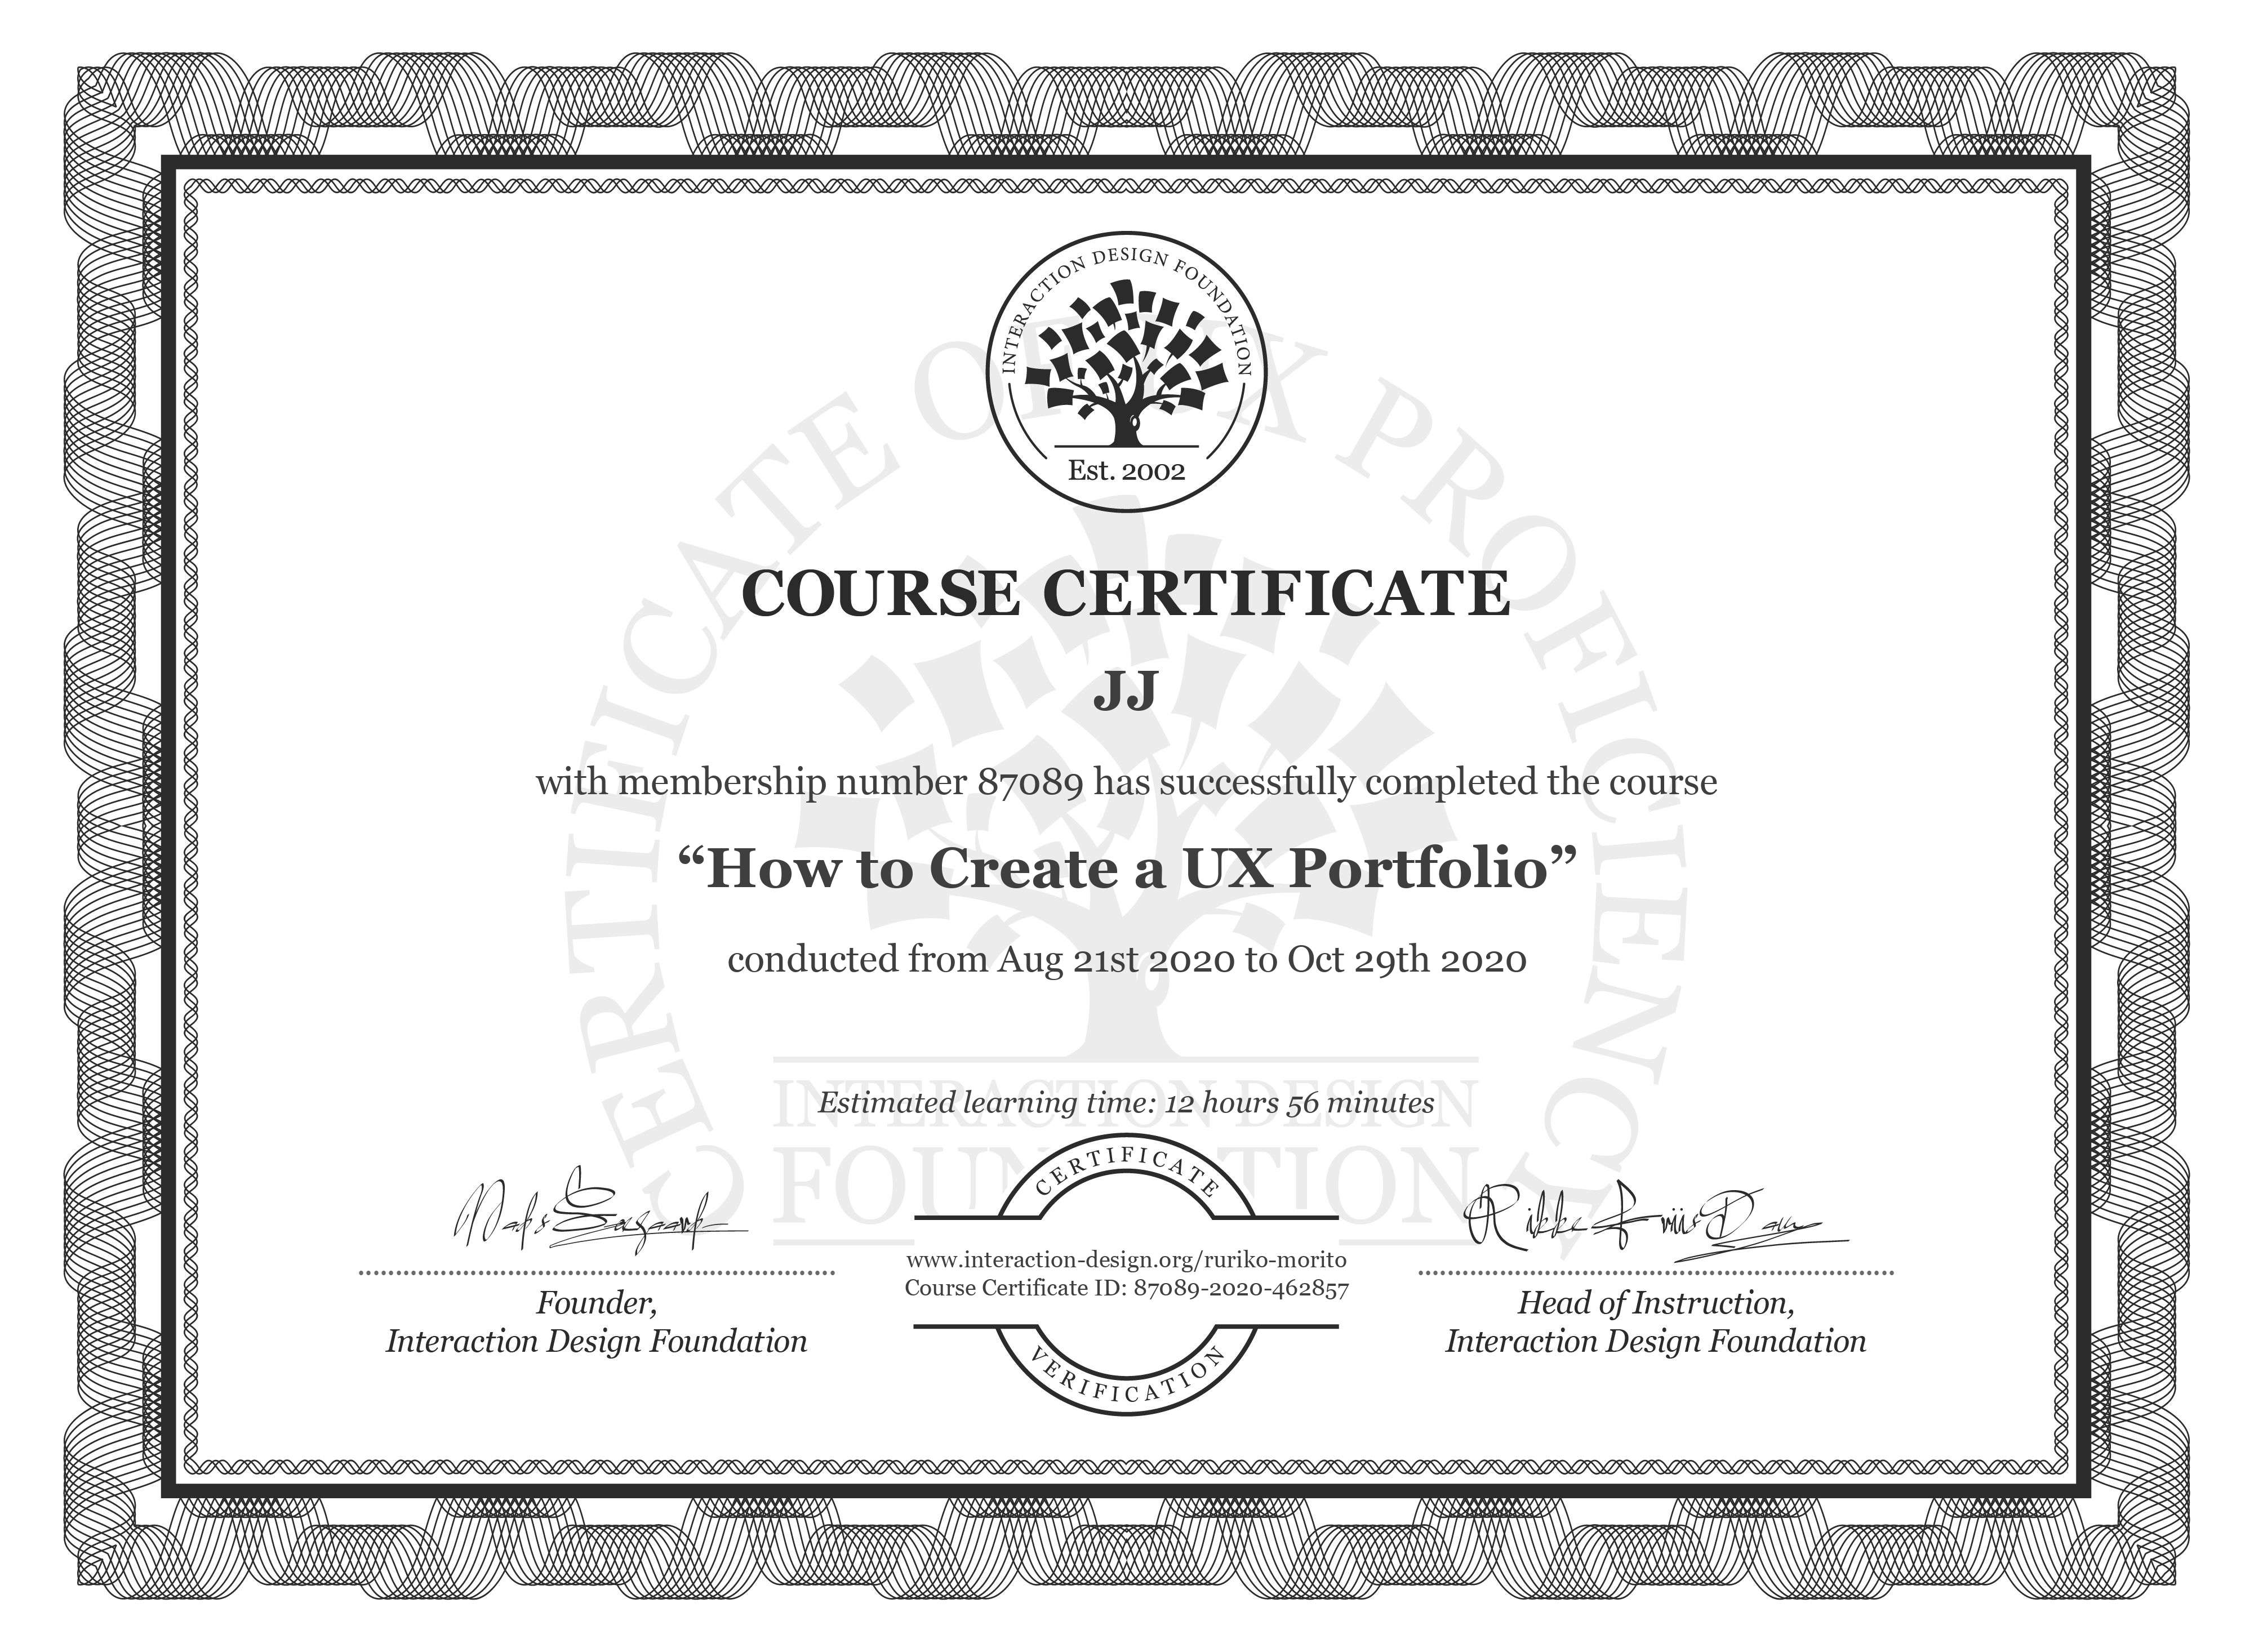 Ruriko Morito's Course Certificate: How to Create a UX Portfolio